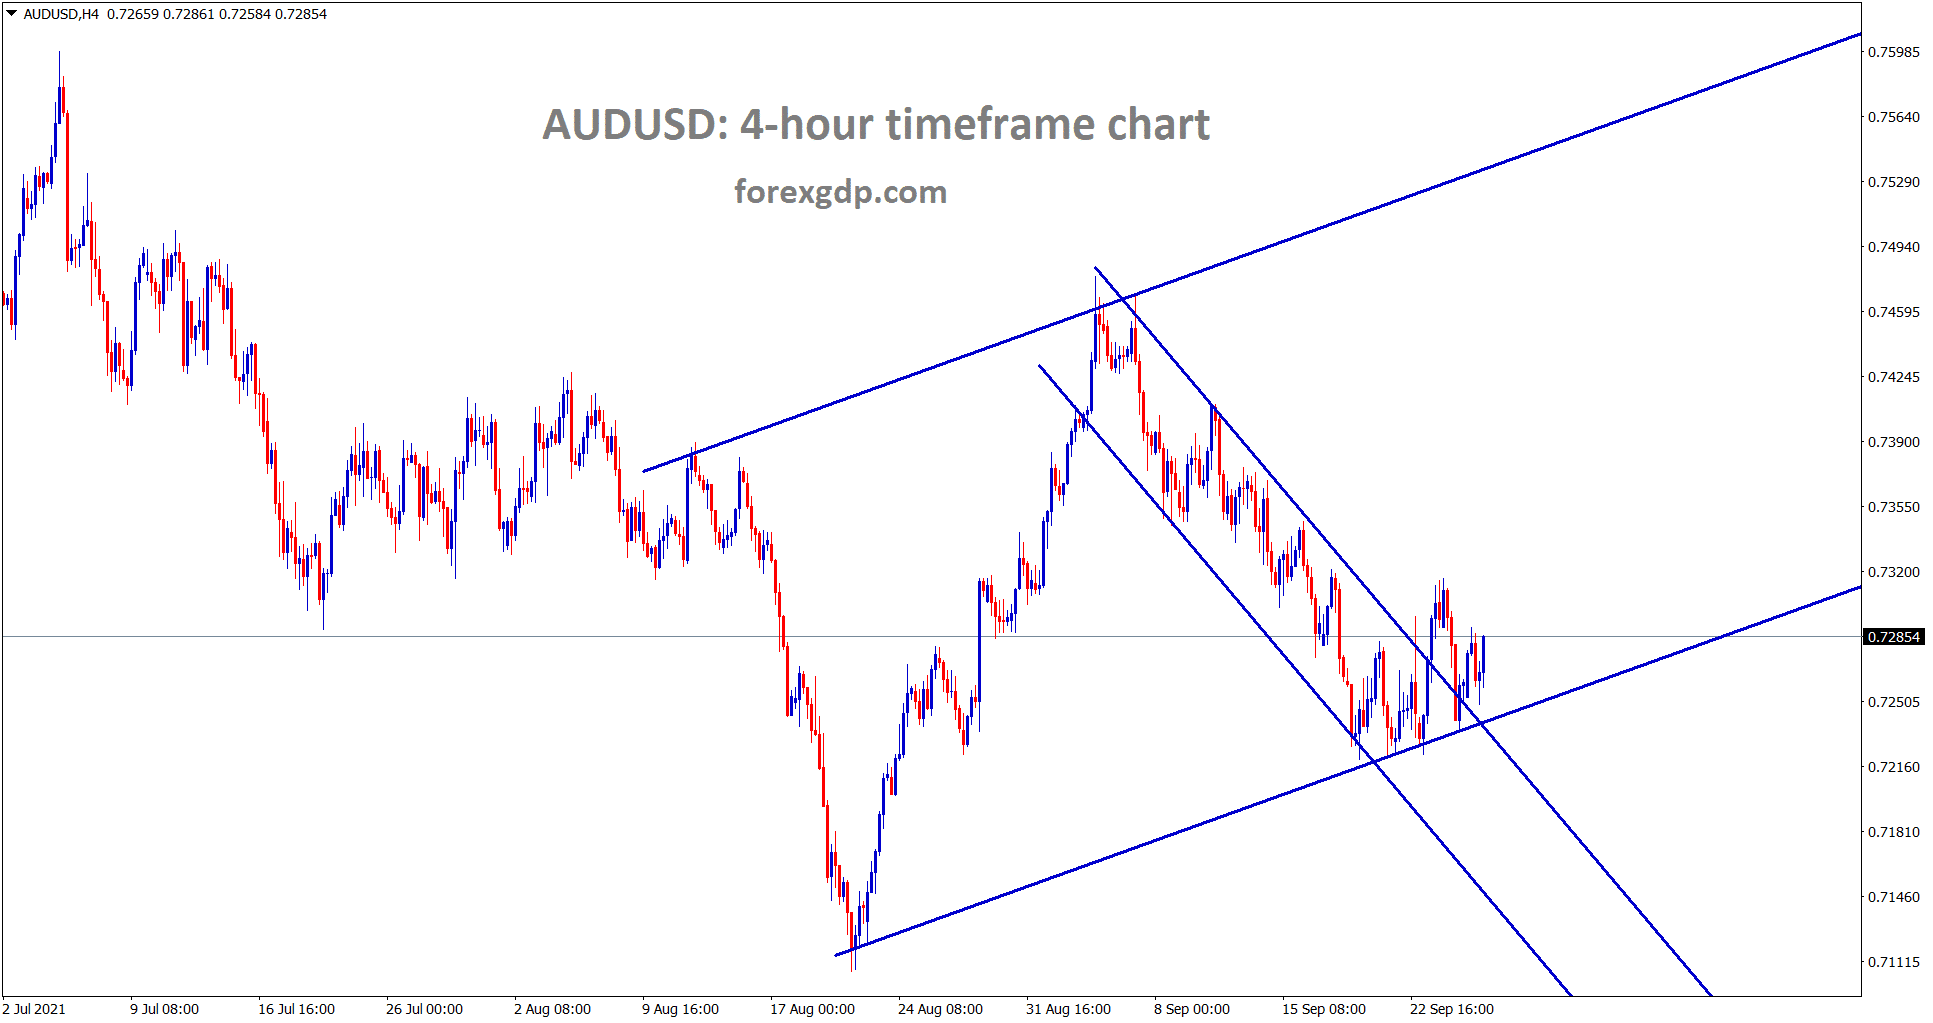 AUDUSD is rebounding from the higher low level breaking the top of the minor descending channel range